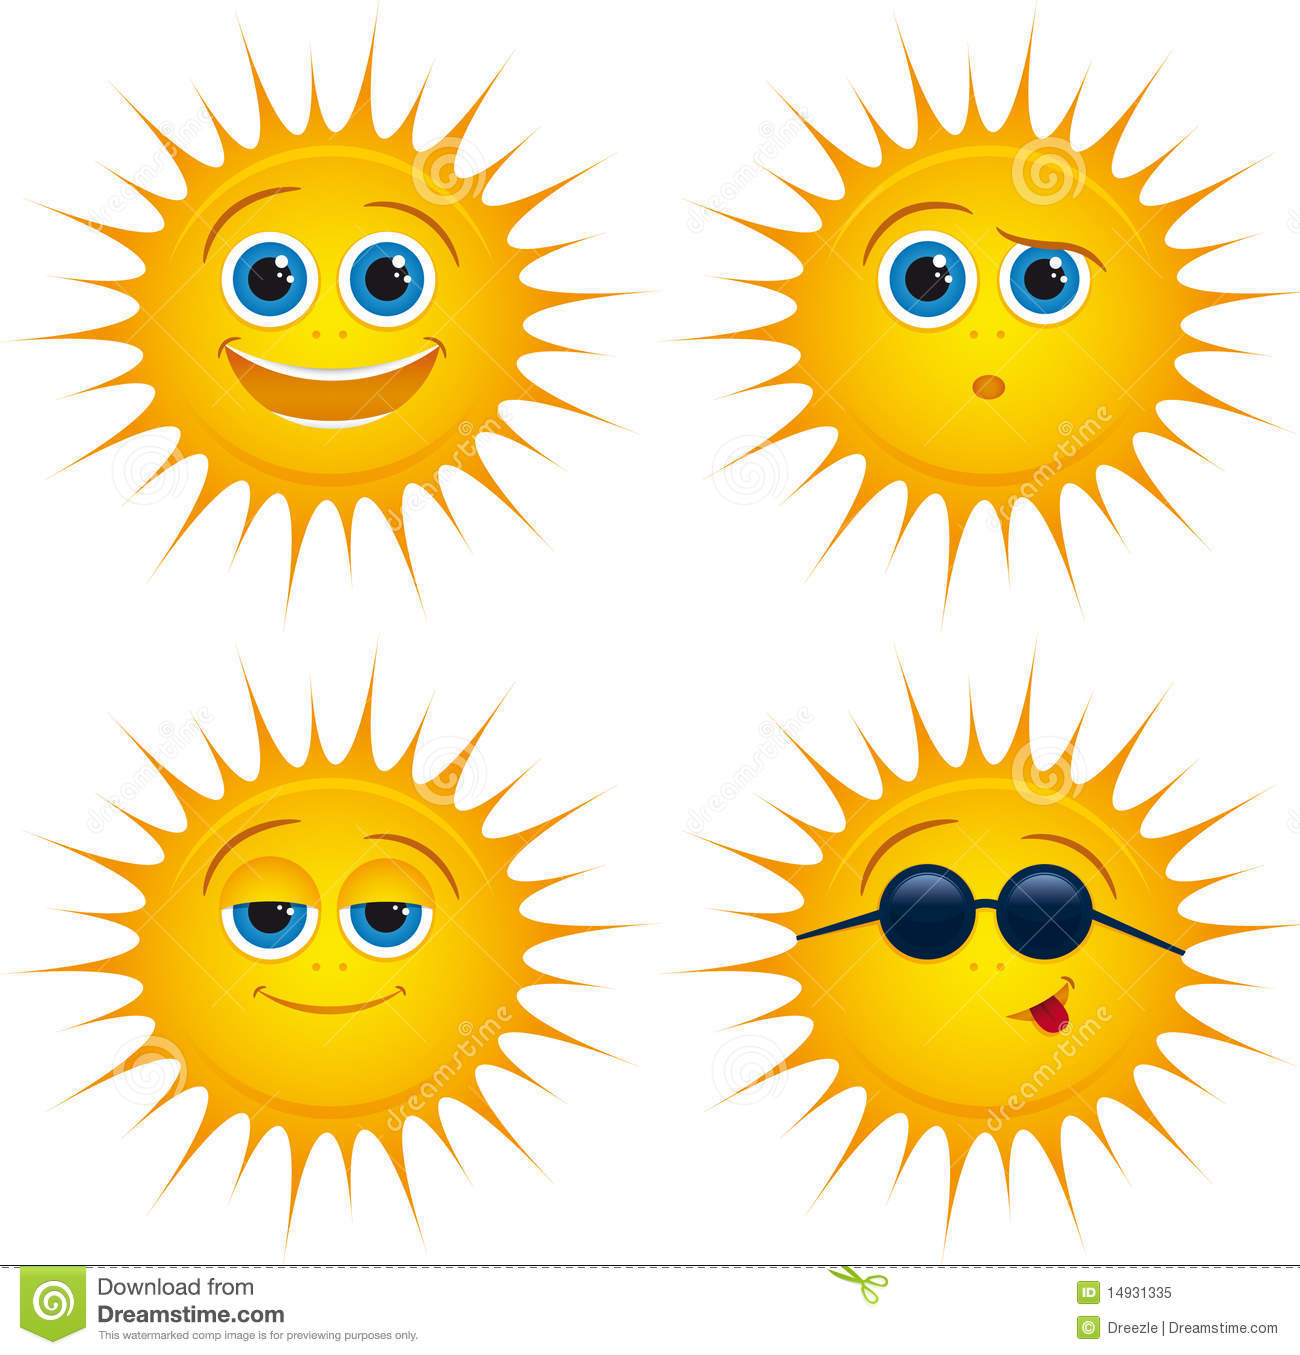 Smiling sun with sunglasses - Smiling Sun Icons With Sunglasses